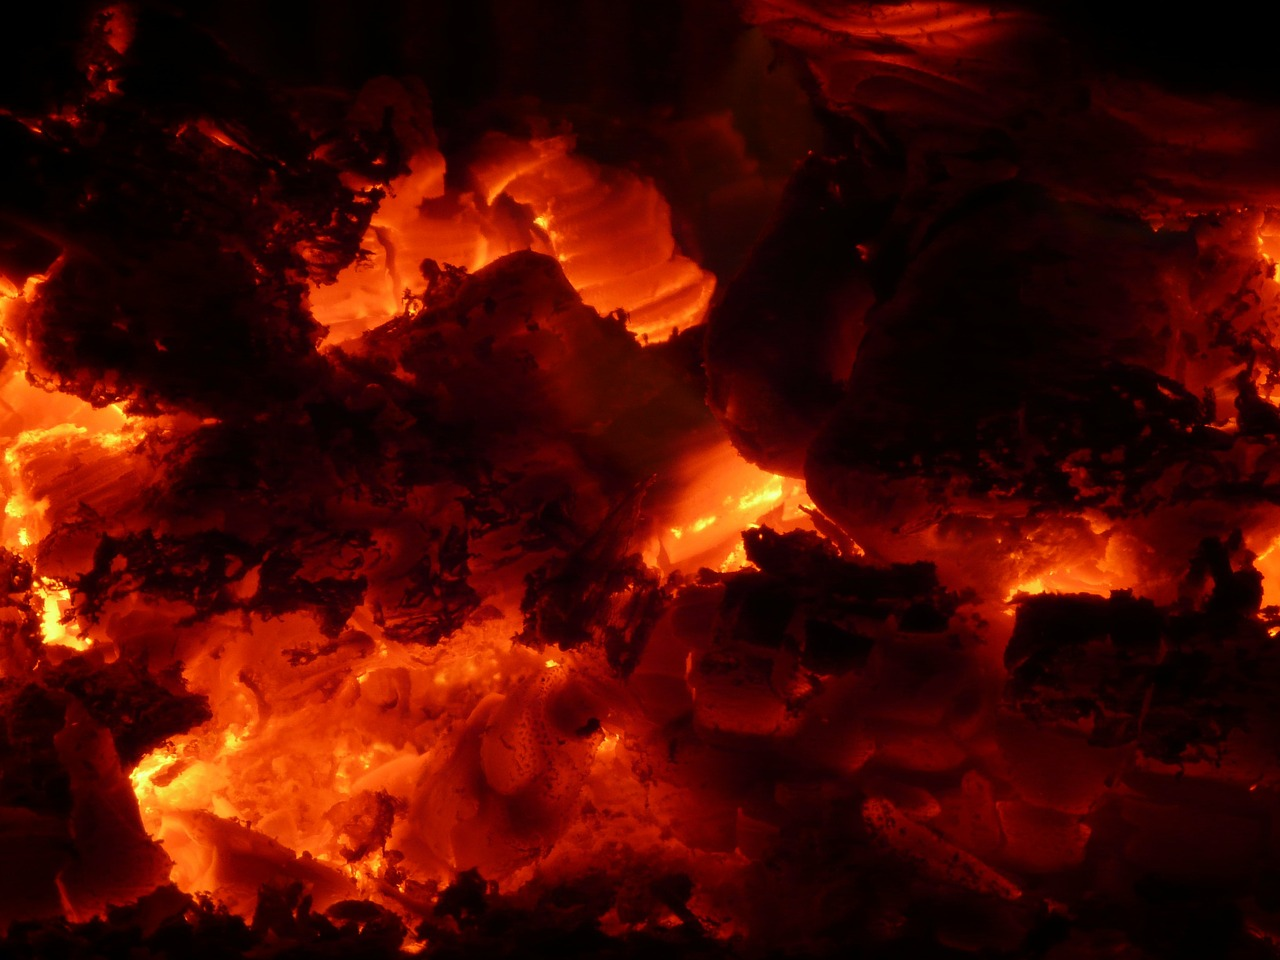 fire,embers,heat,flame,hot,barbecue,burn,free pictures, free photos, free images, royalty free, free illustrations